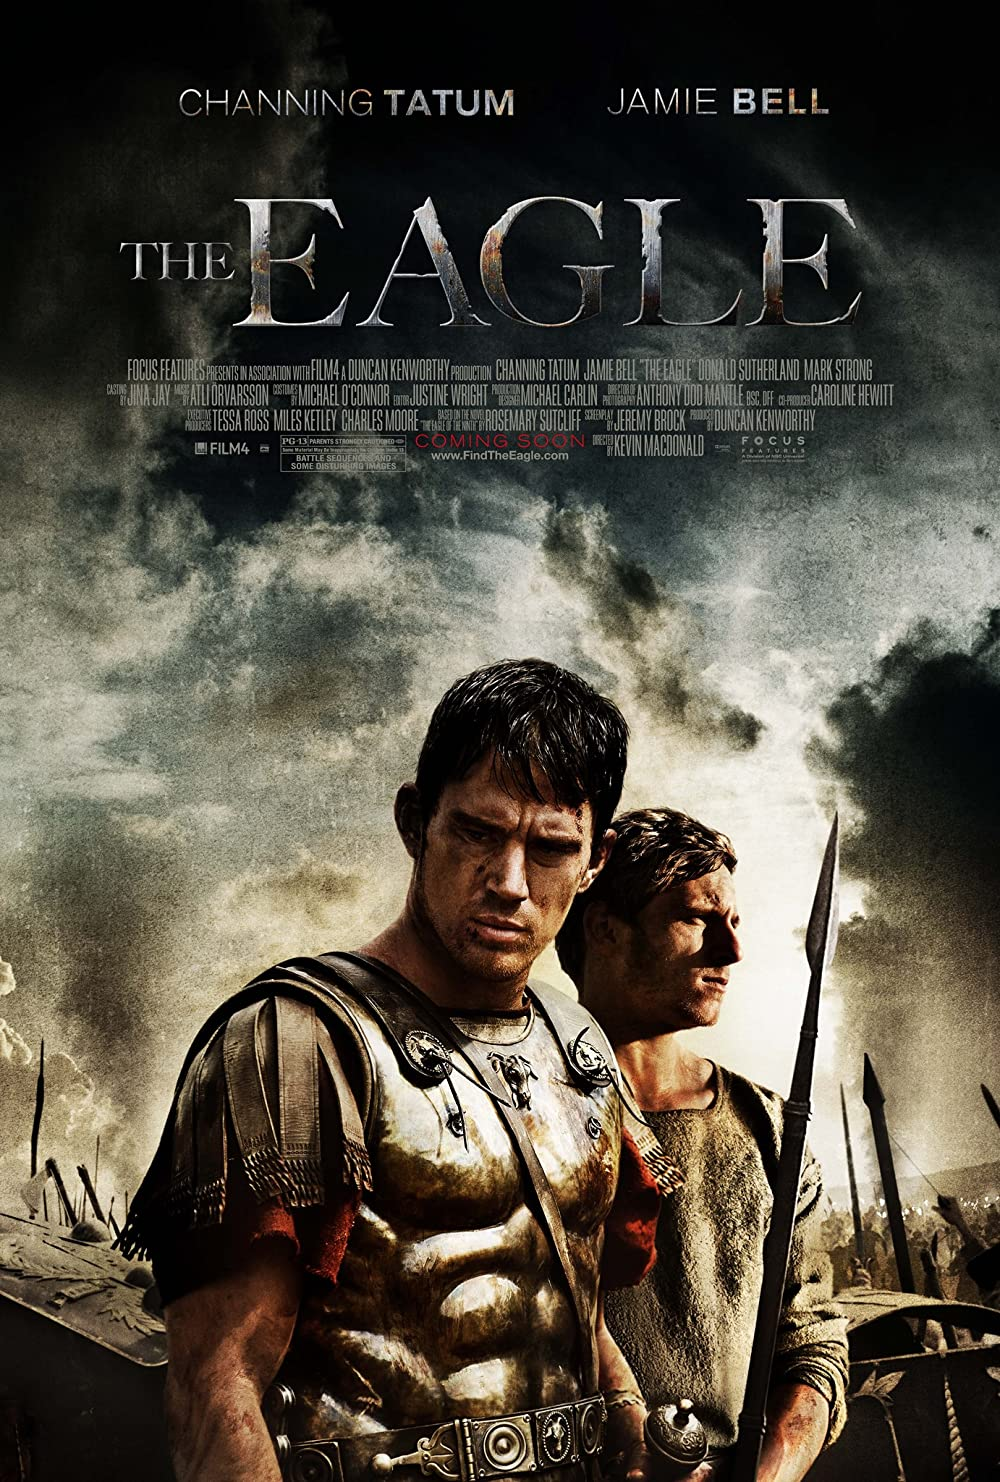 The Eagle 2011 Dual Audio  480p | 720p BluRay [Hindi ORG + English]  x264 AAC  400MB | 800MB Download